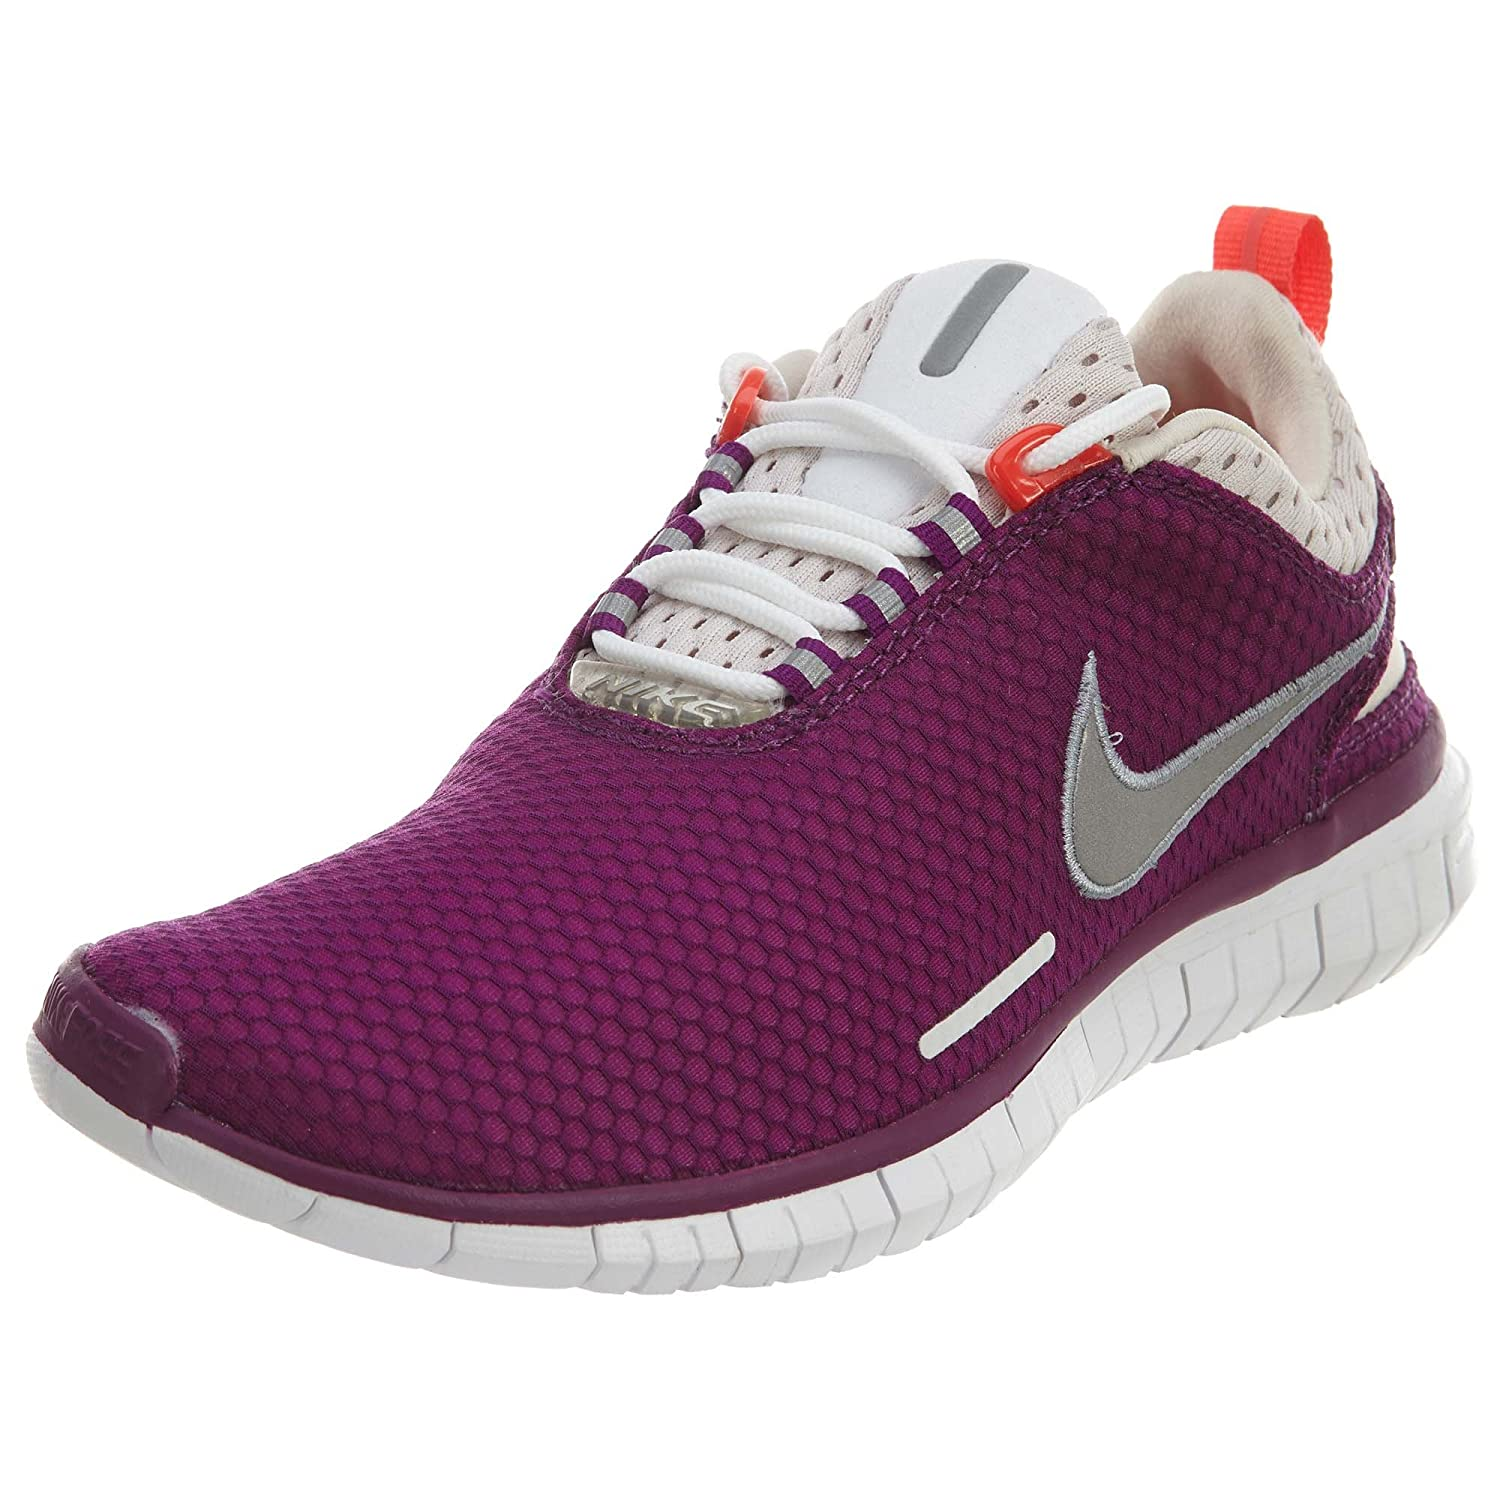 finest selection 66b5d f8888 Amazon.com   Nike Free OG 14 BR Running Women s Shoes Size 9 Violett    Fashion Sneakers